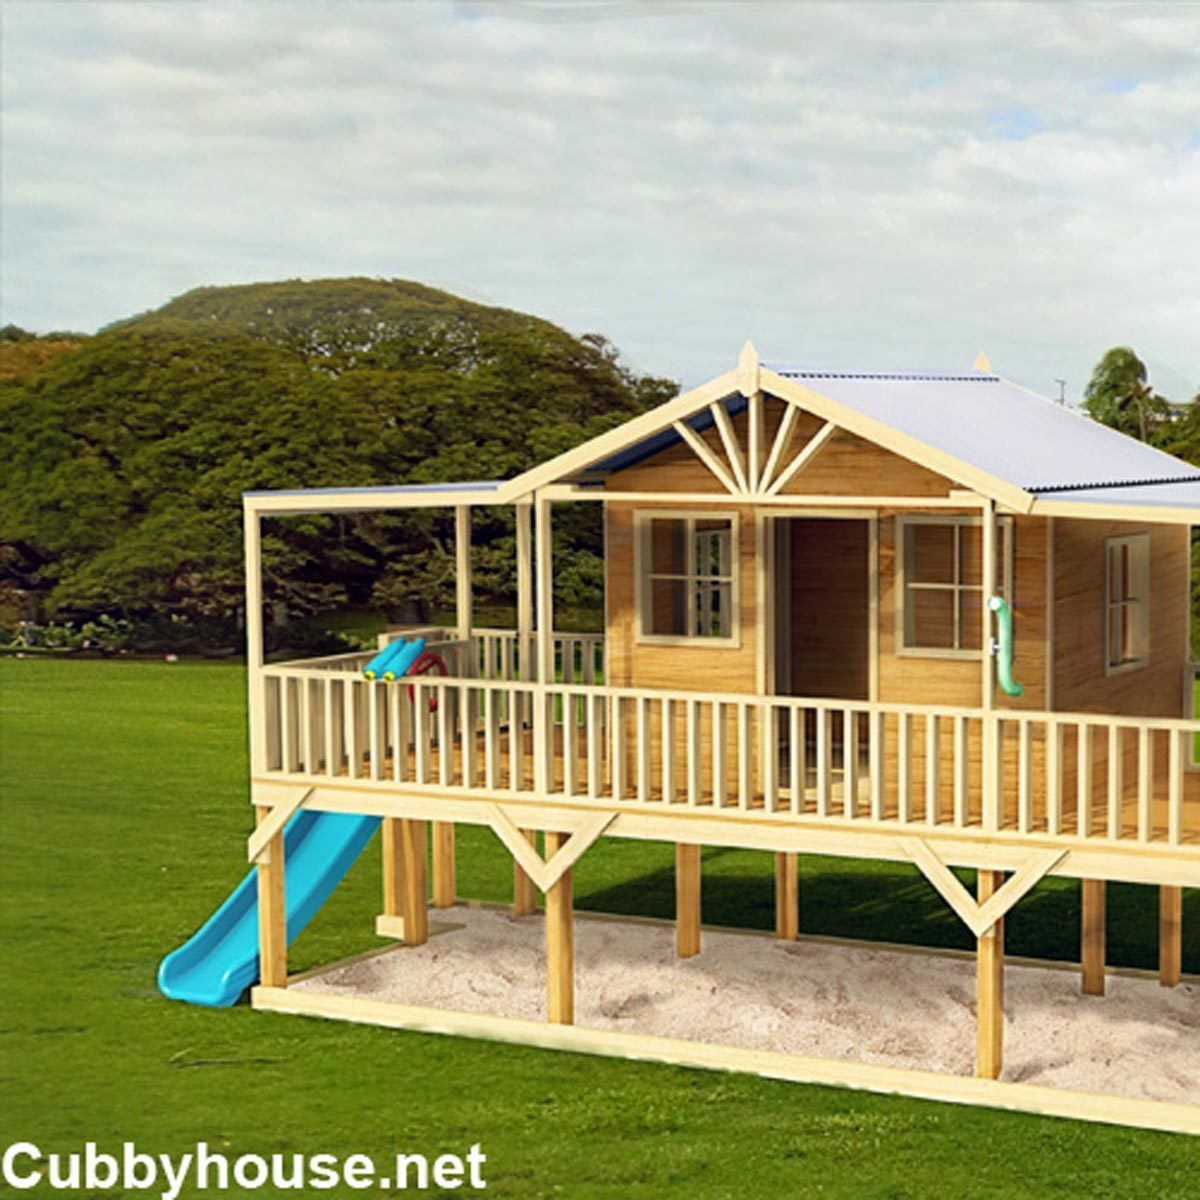 Playhouse sandbox swingset